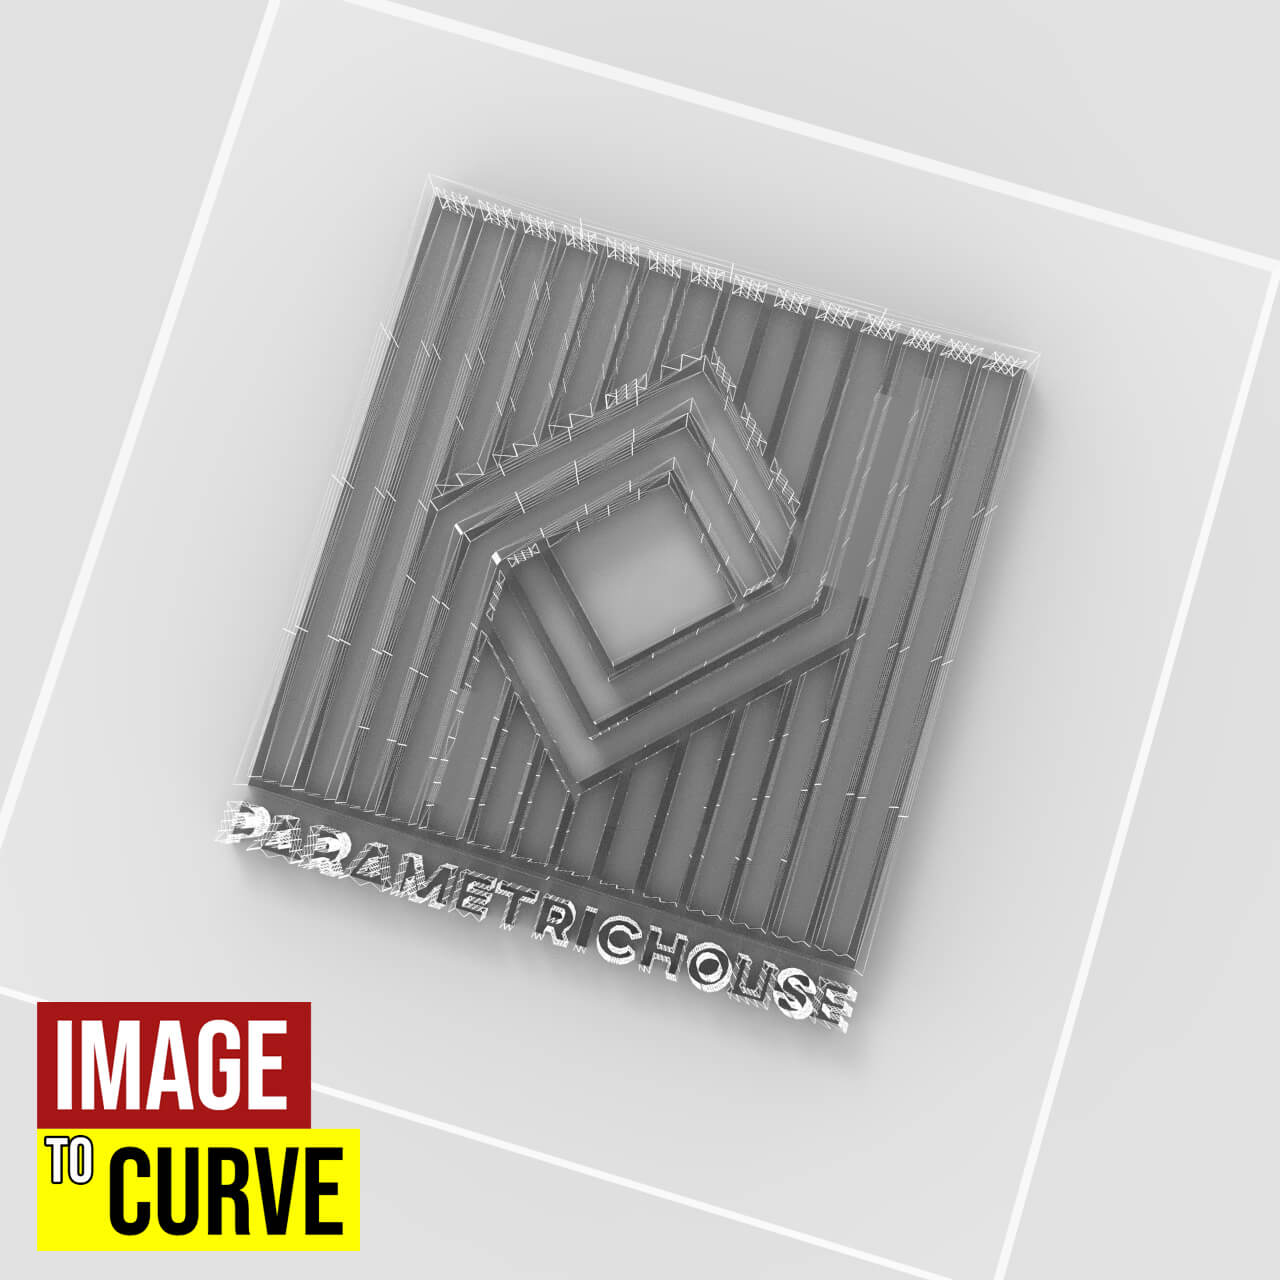 Image to curve1280